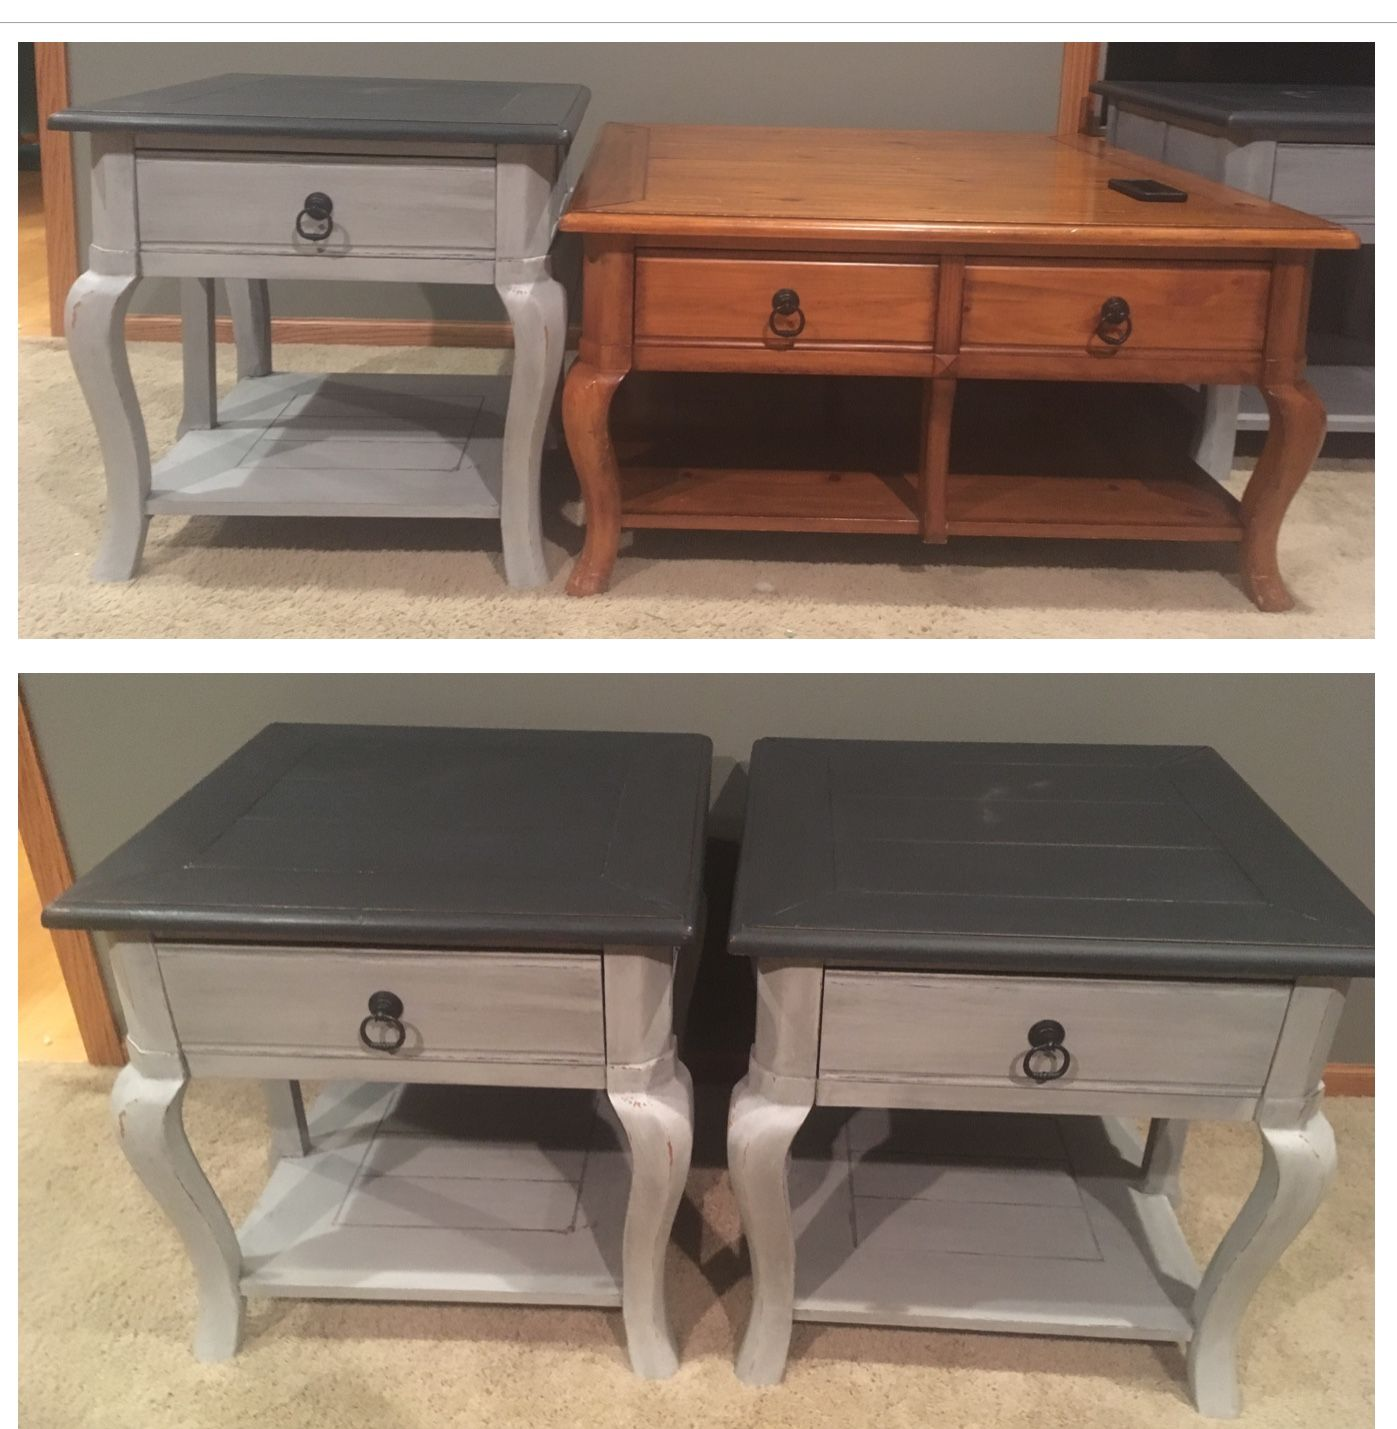 Refinished End Tables Used Gray Chalk Paint On The Bottom Charcoal Chalk Paint On Painting Wood Furniture Refinished End Tables Black Chalk Paint Furniture